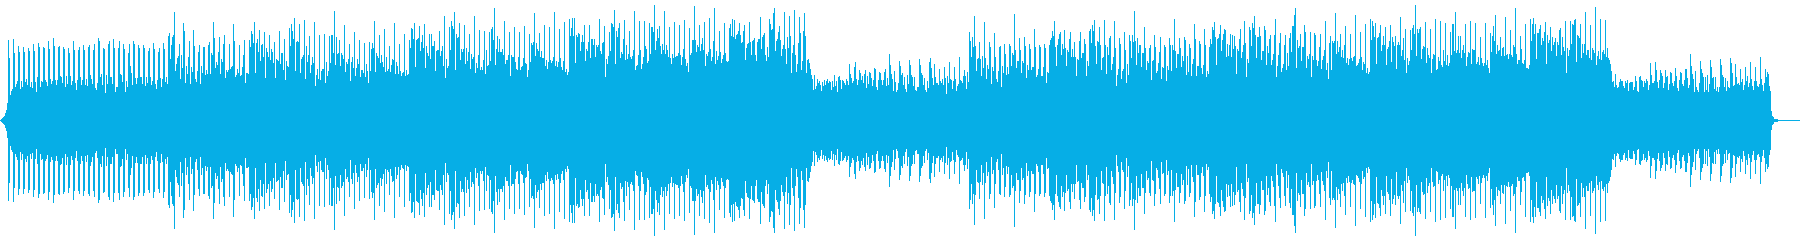 Cutting-edge EDM that makes you feel the power hidden in the heart's reproduced waveform